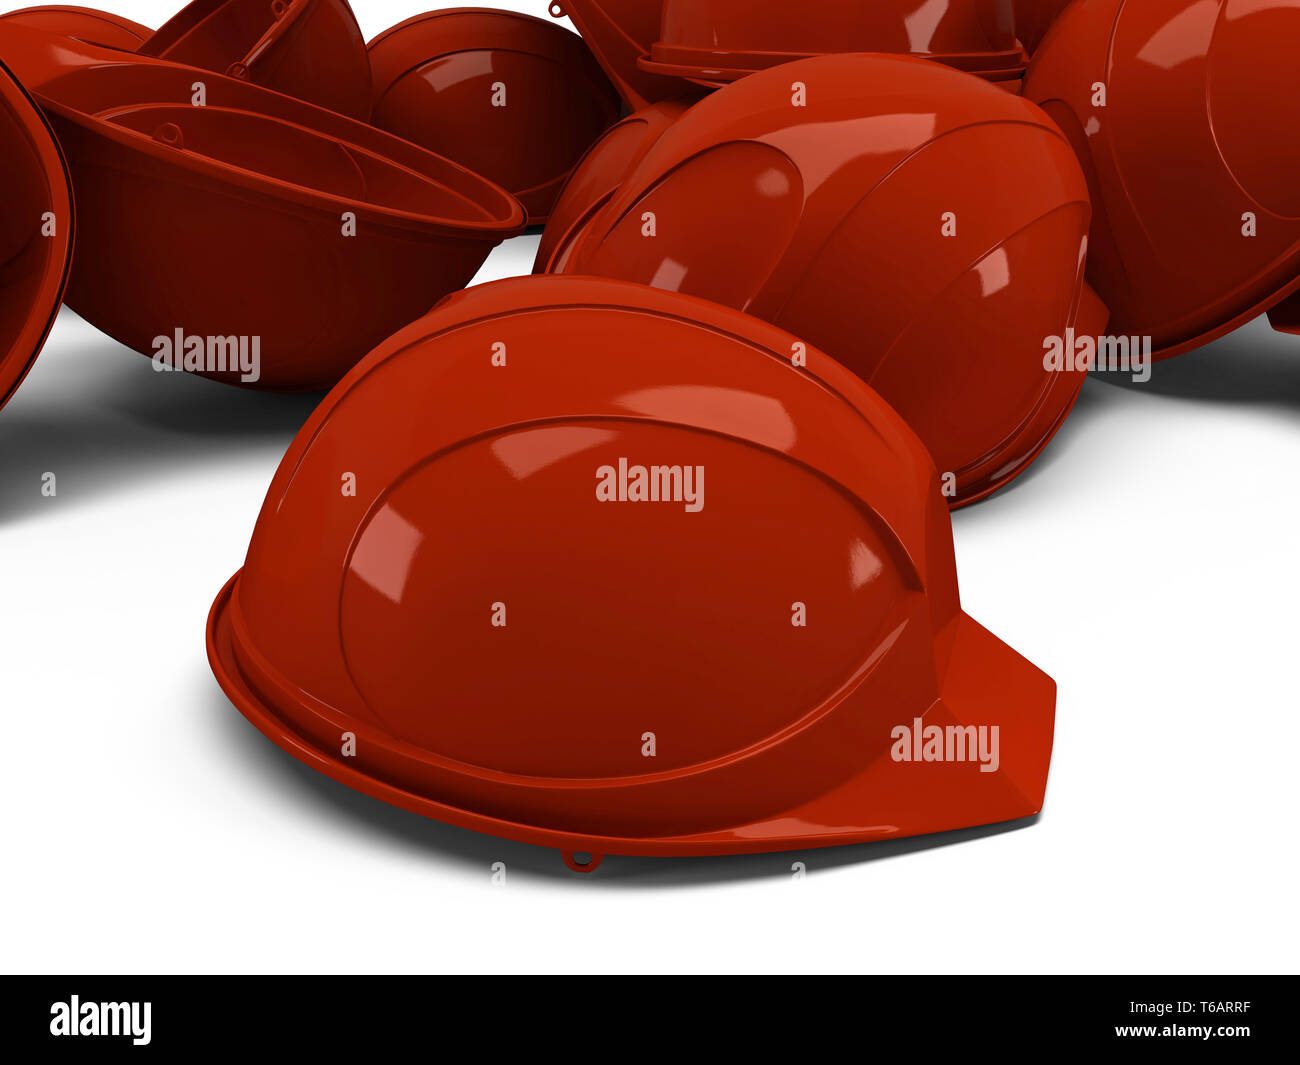 pile of helmets - Stock Image